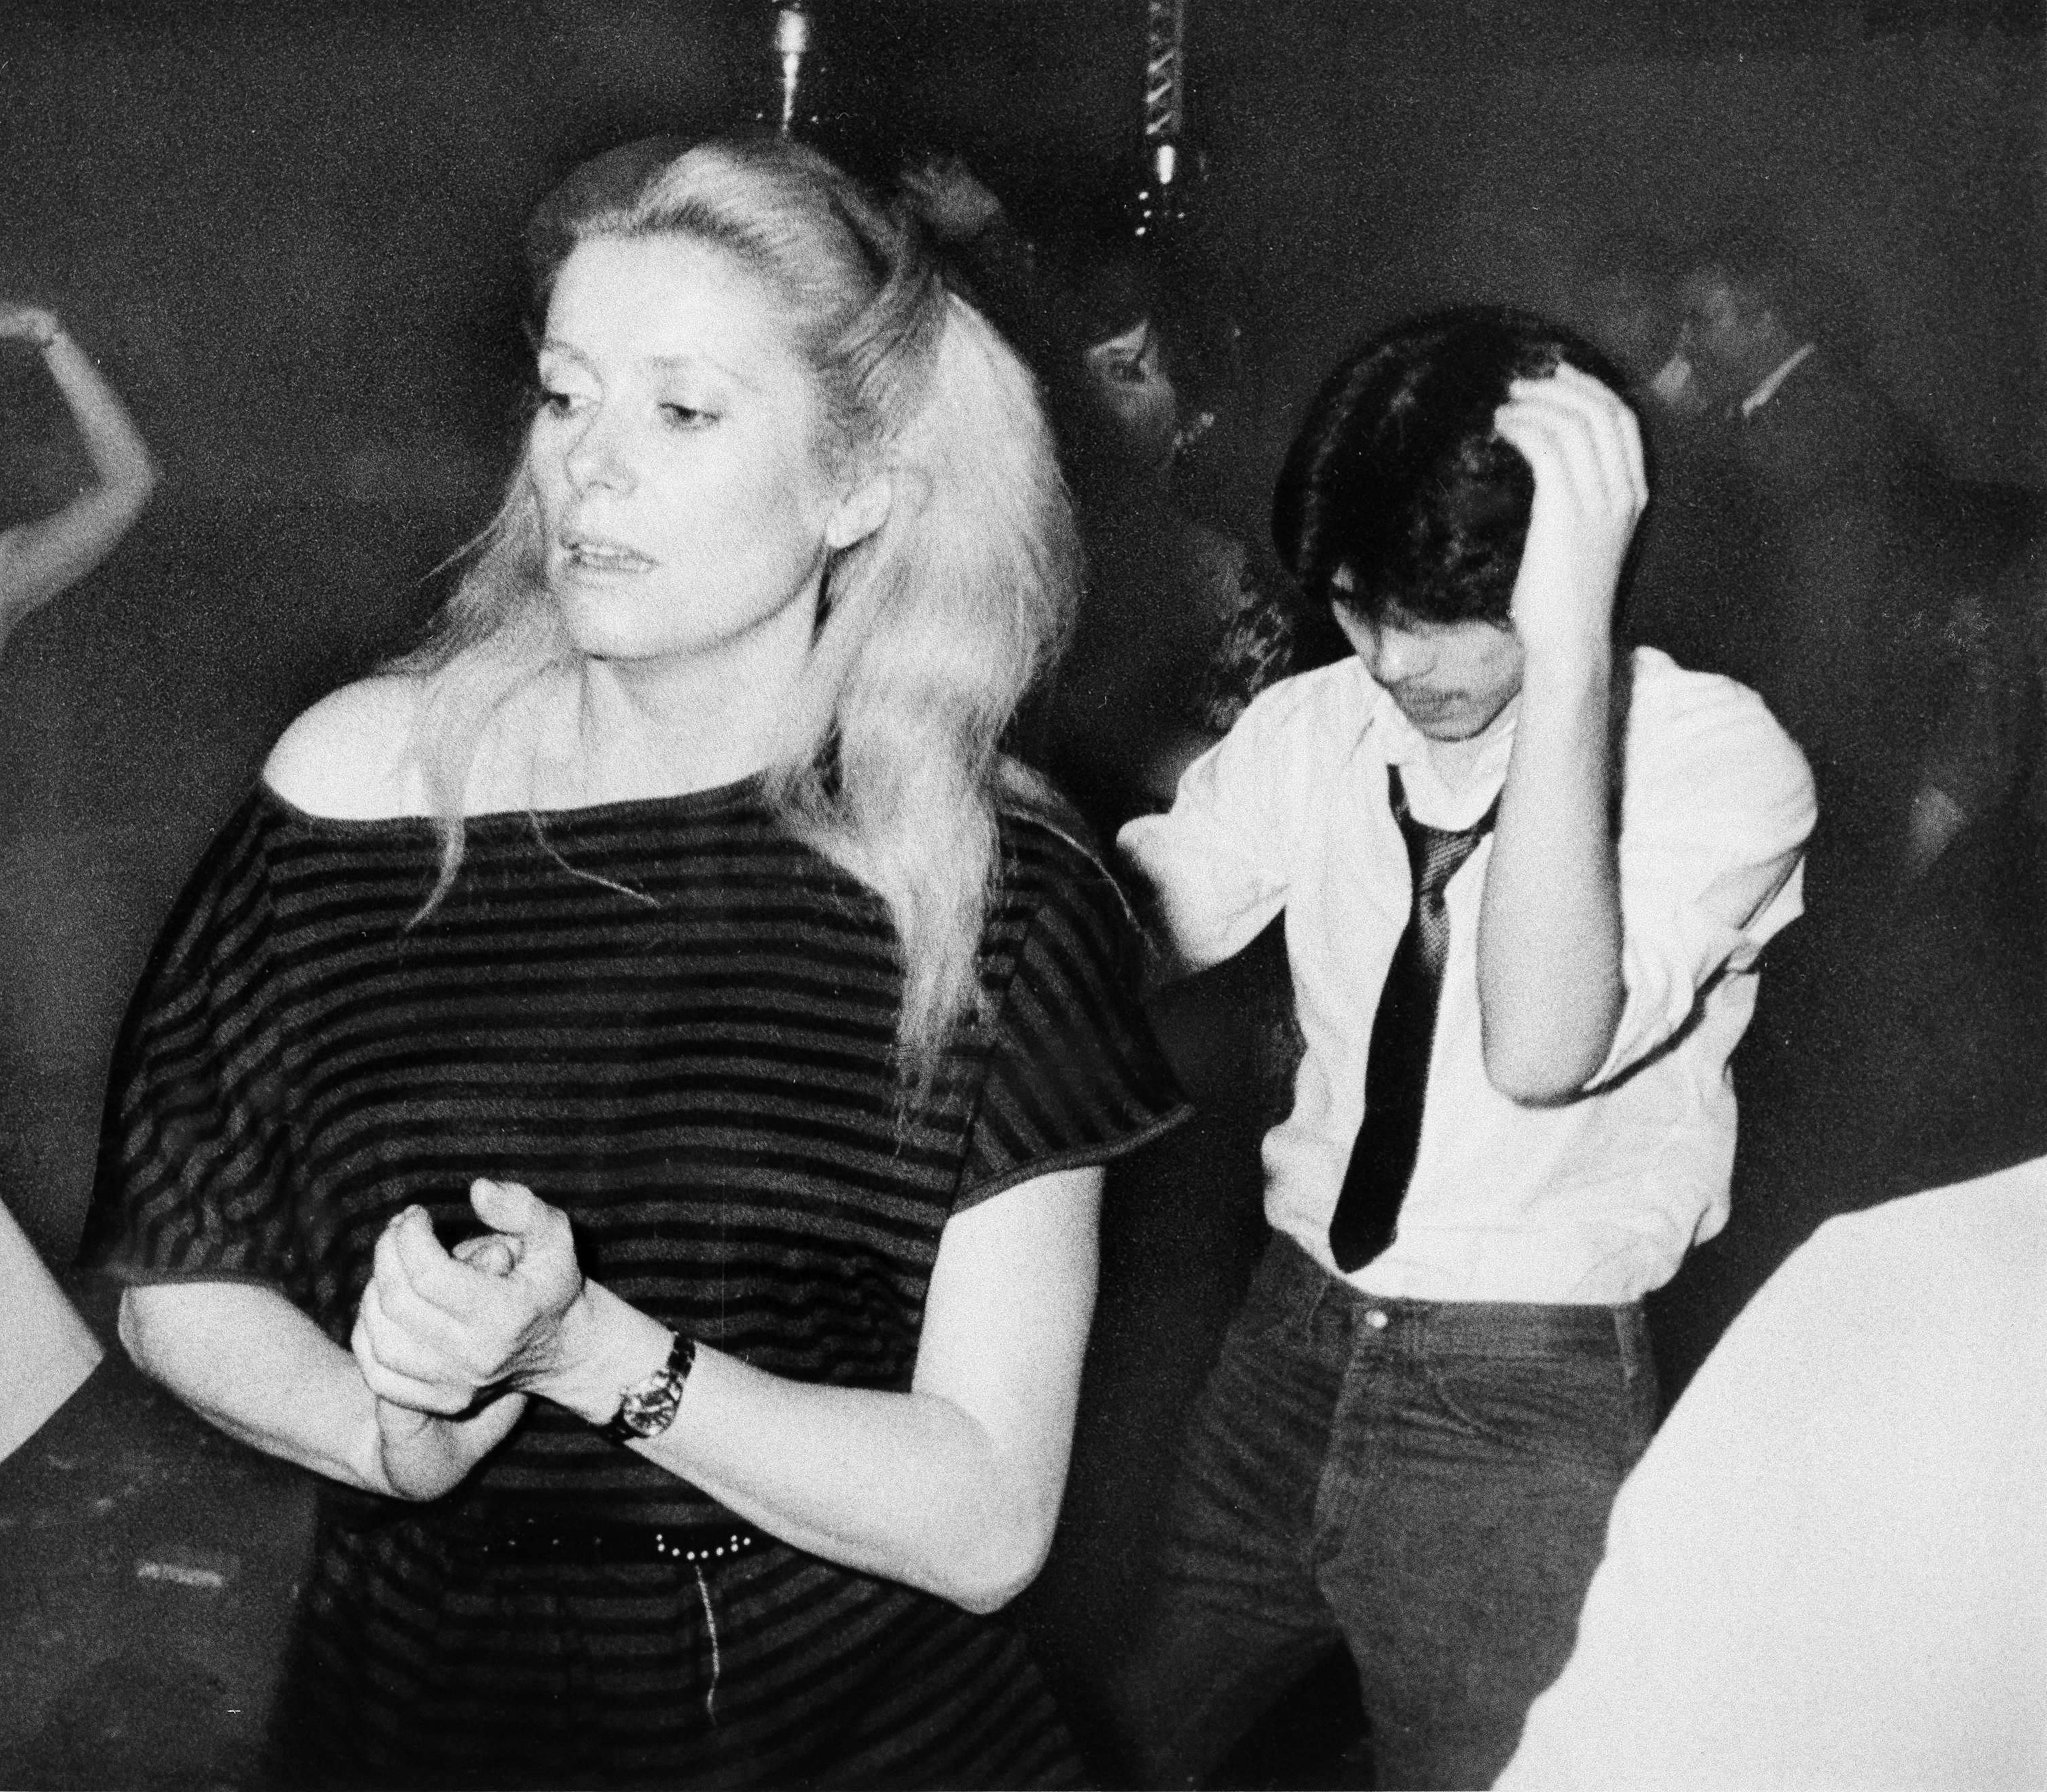 Actress Catherine Deneuve dances at New York disco, Studio 54, Feb. 27, 1979. Man at right is unidentified. (AP Photo)